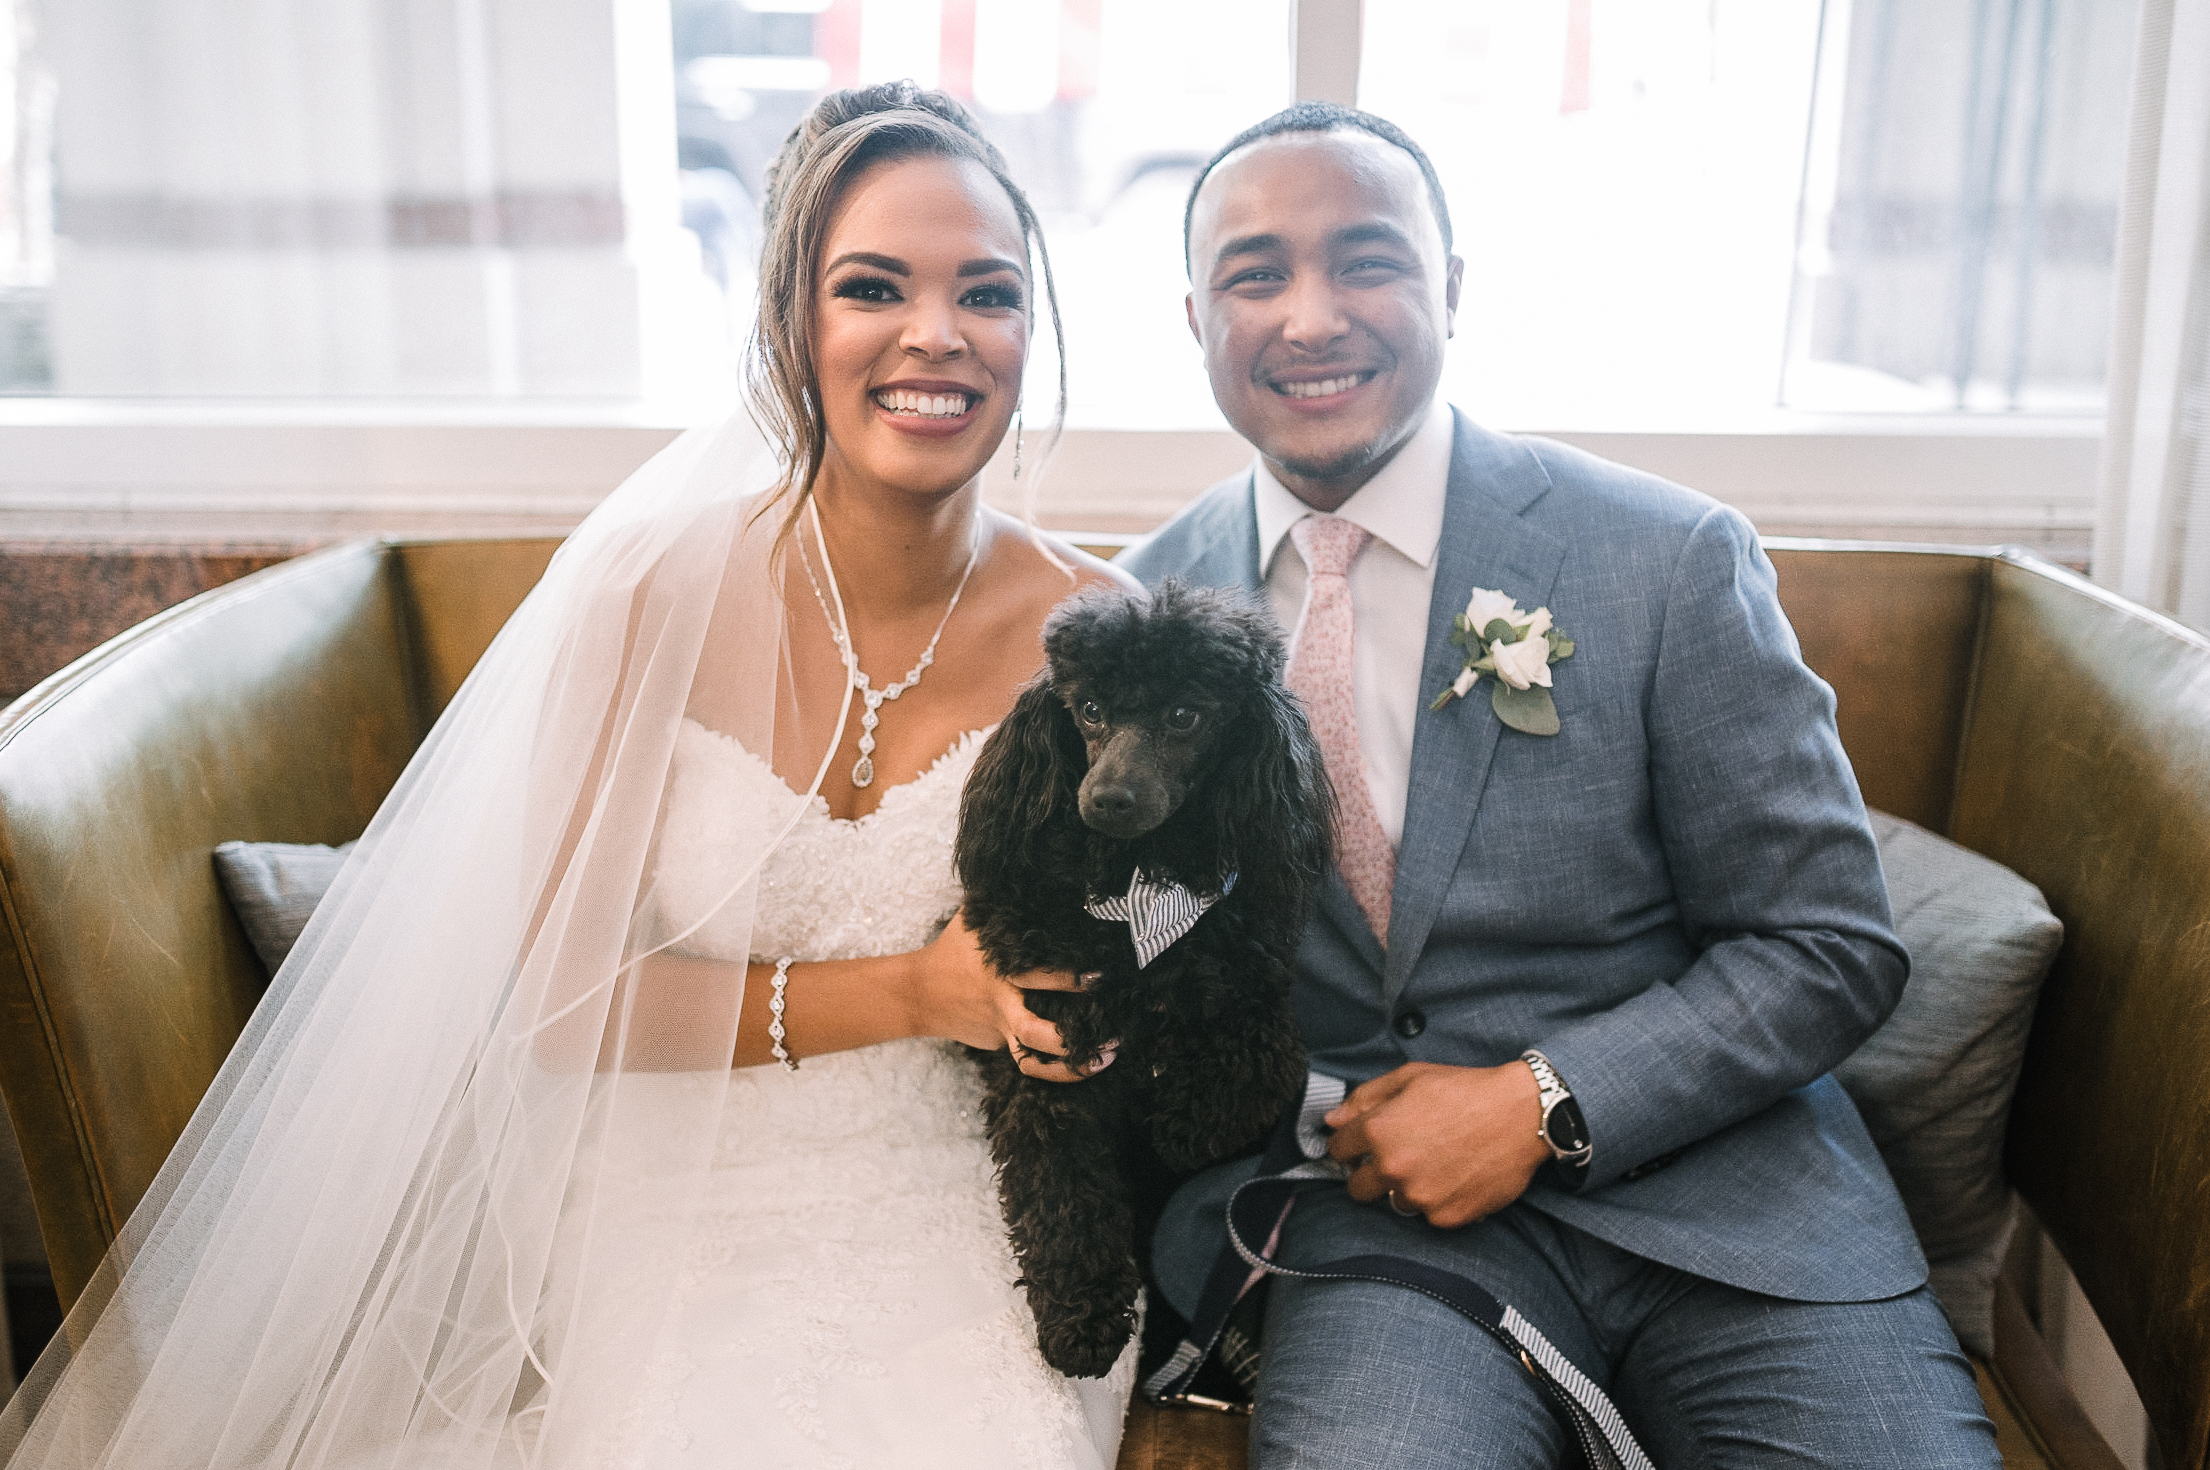 bride and groom smiling with their dog at The Park Hyatt Hotel in Washington DC